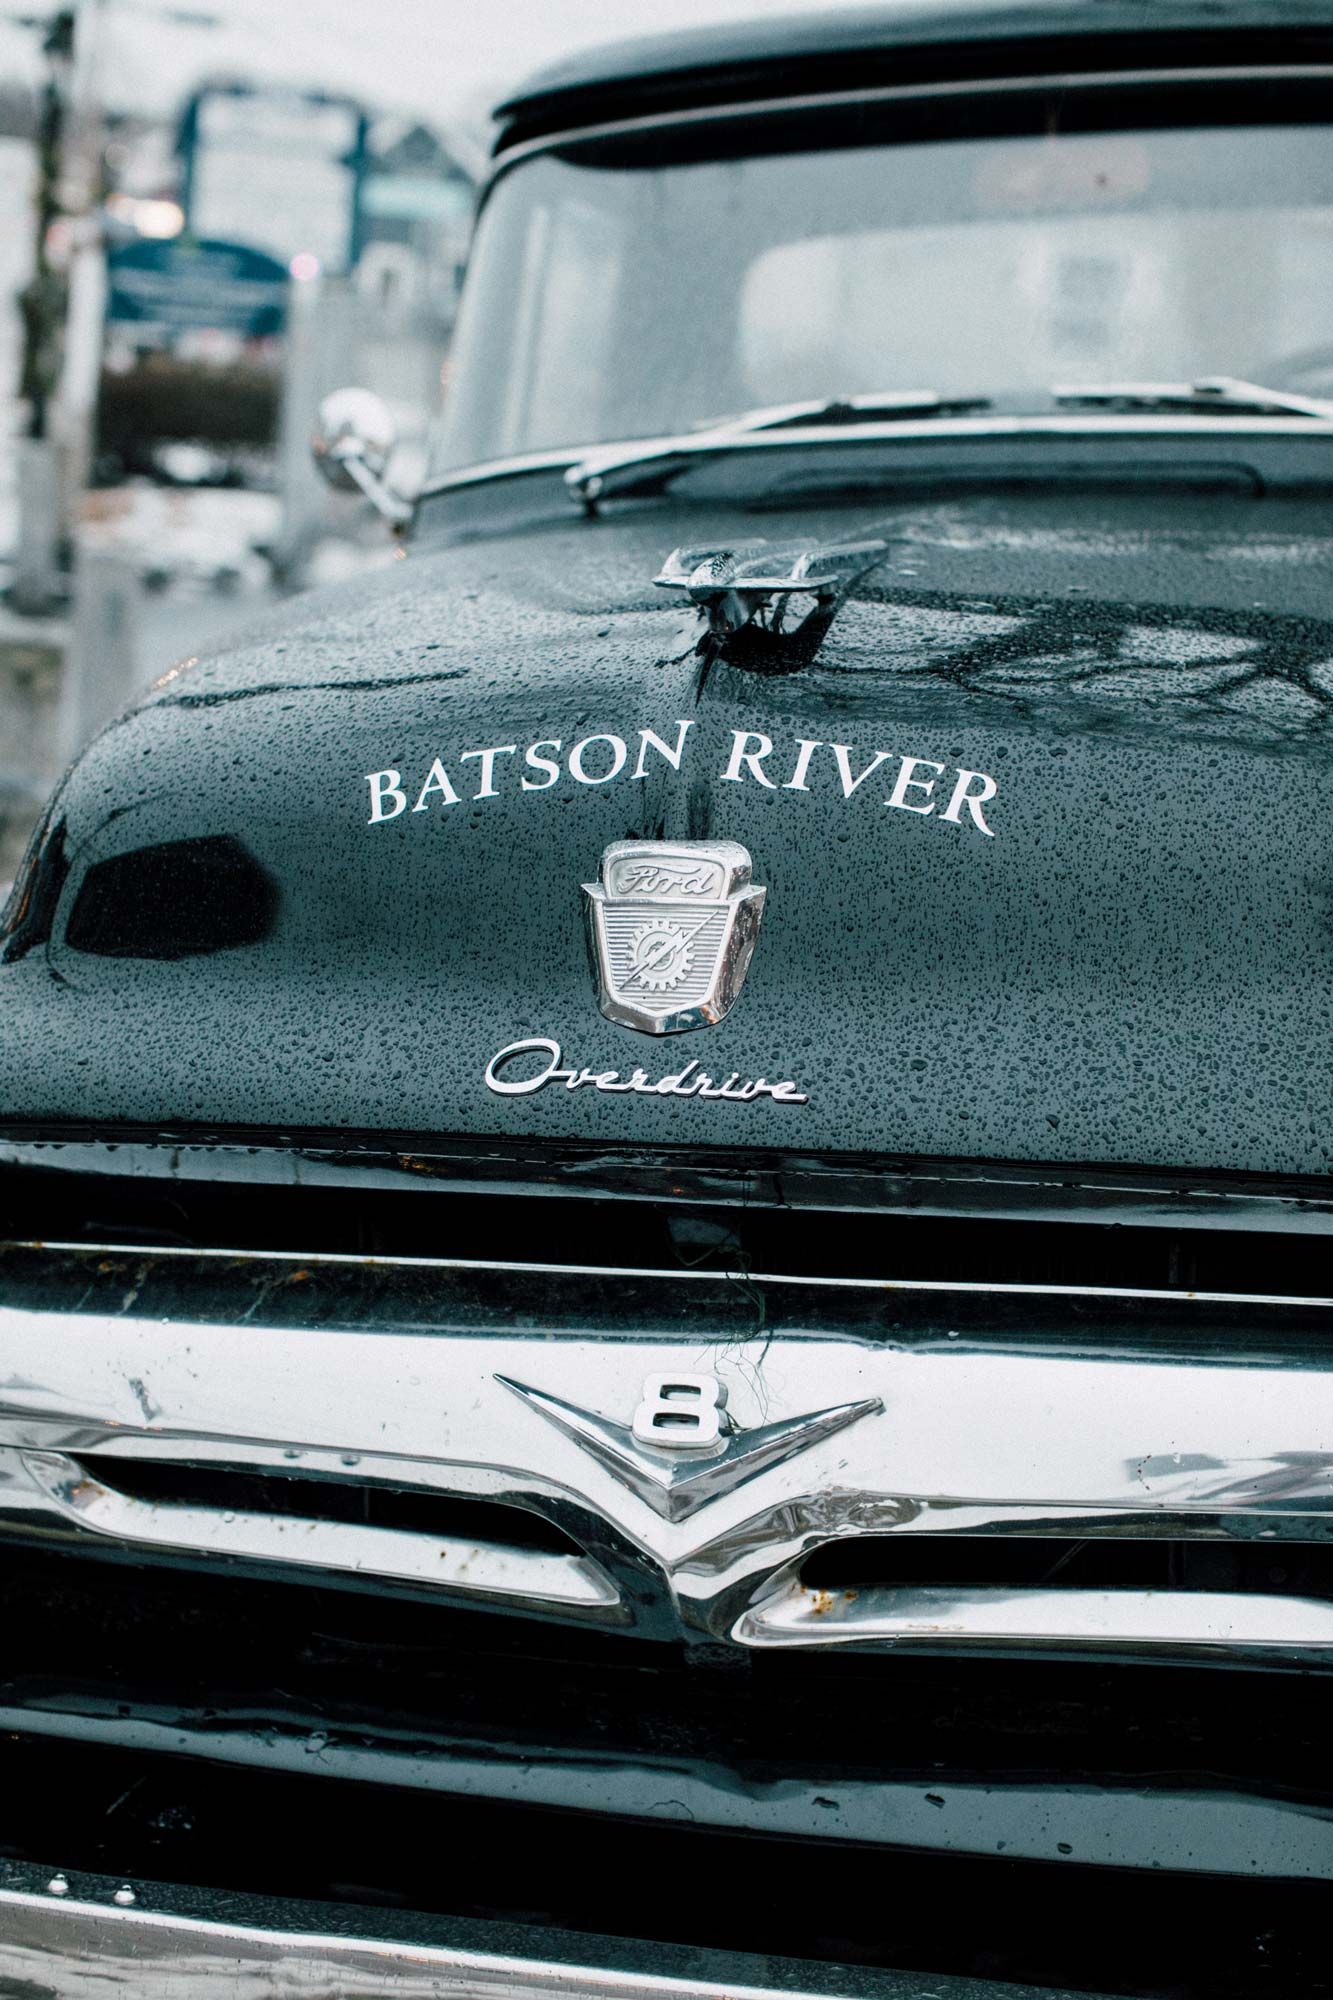 The Batson River Tasting Room logo, by Hugh McCormick Design Co., on the hood of a classic Ford Overdrive pickup truck.